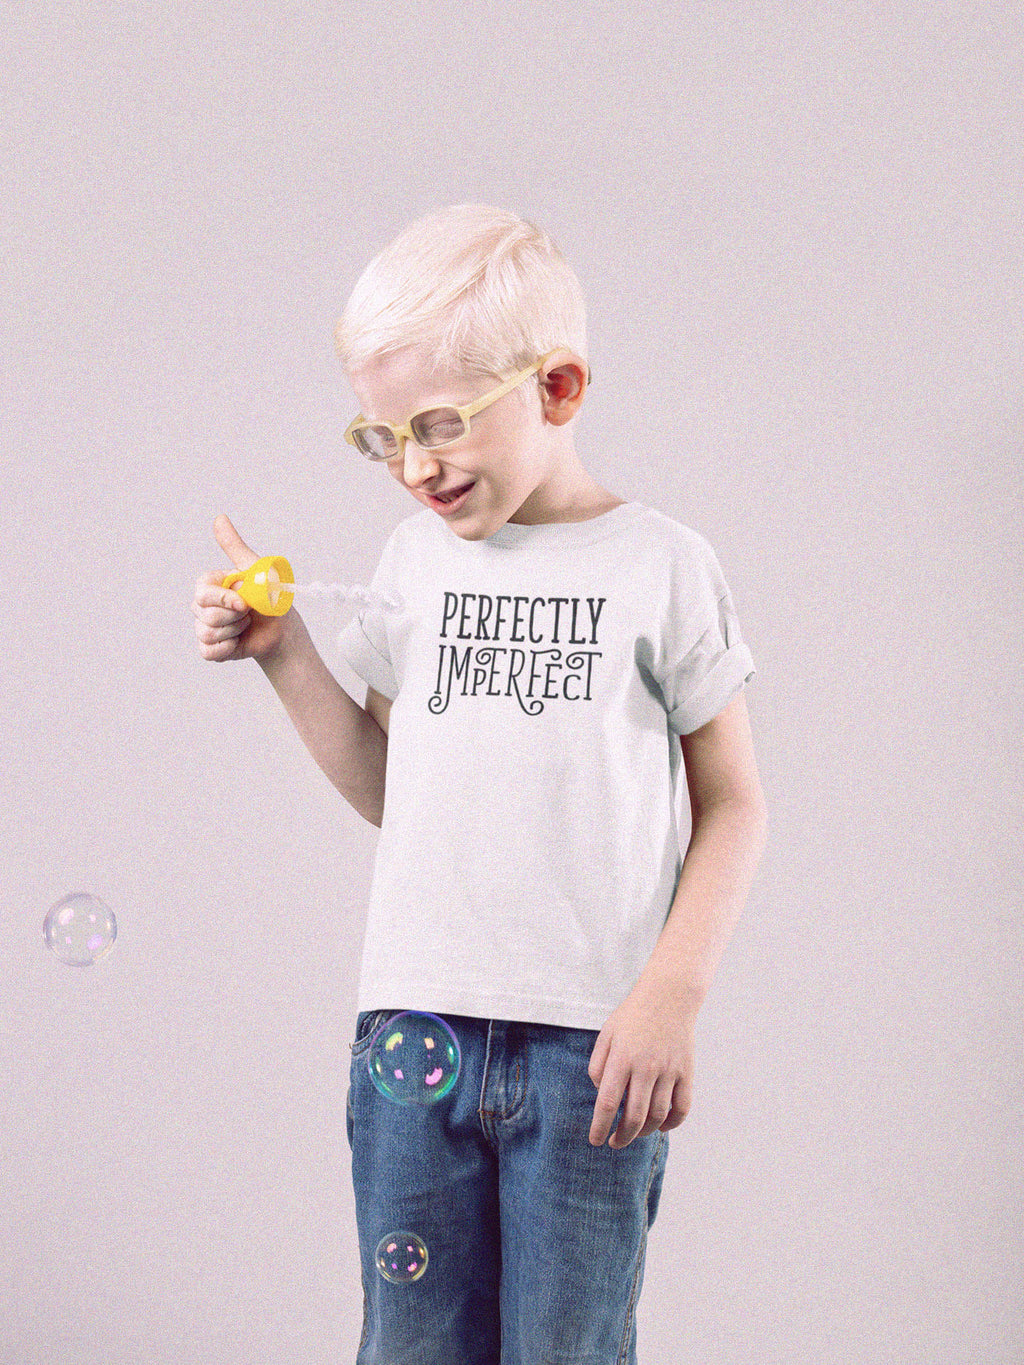 kid blowing bubbles wearing perfectly imperfect t-shirt